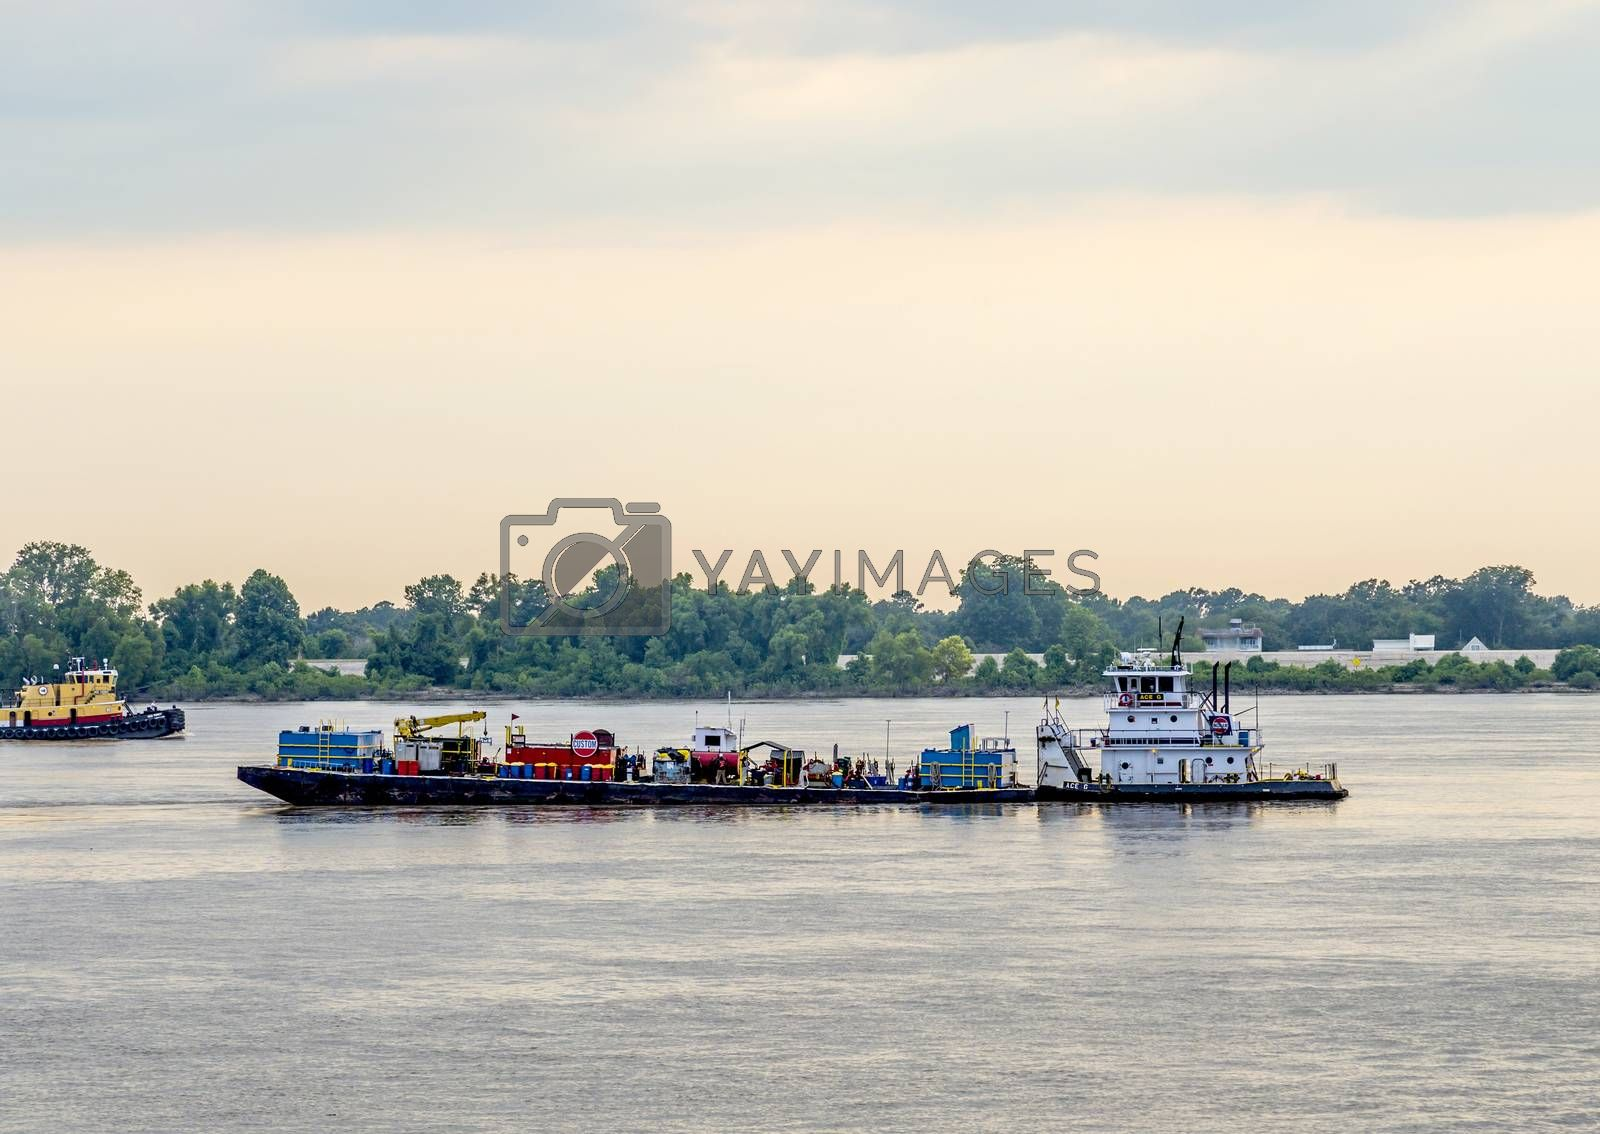 BATON ROUGE, USA - JULY 13, 2013: freight ship on Mississippi river at sunset in Baton Rouge, USA. The Mississippi ranks as the fourth longest and tenth largest river in the world.